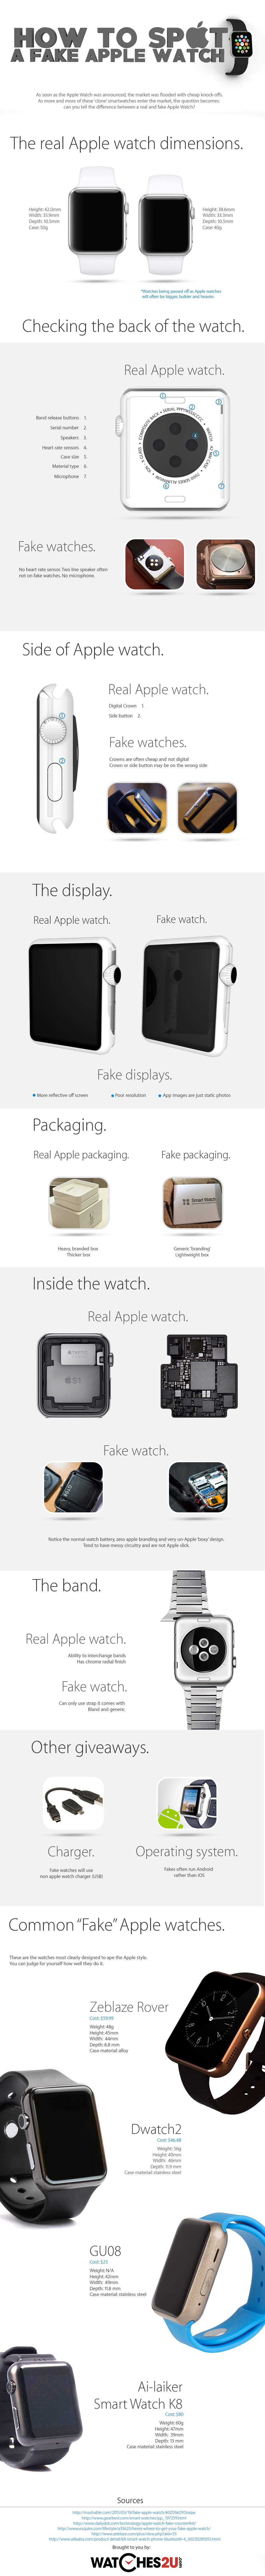 Fake Apple Watches [Infographic]